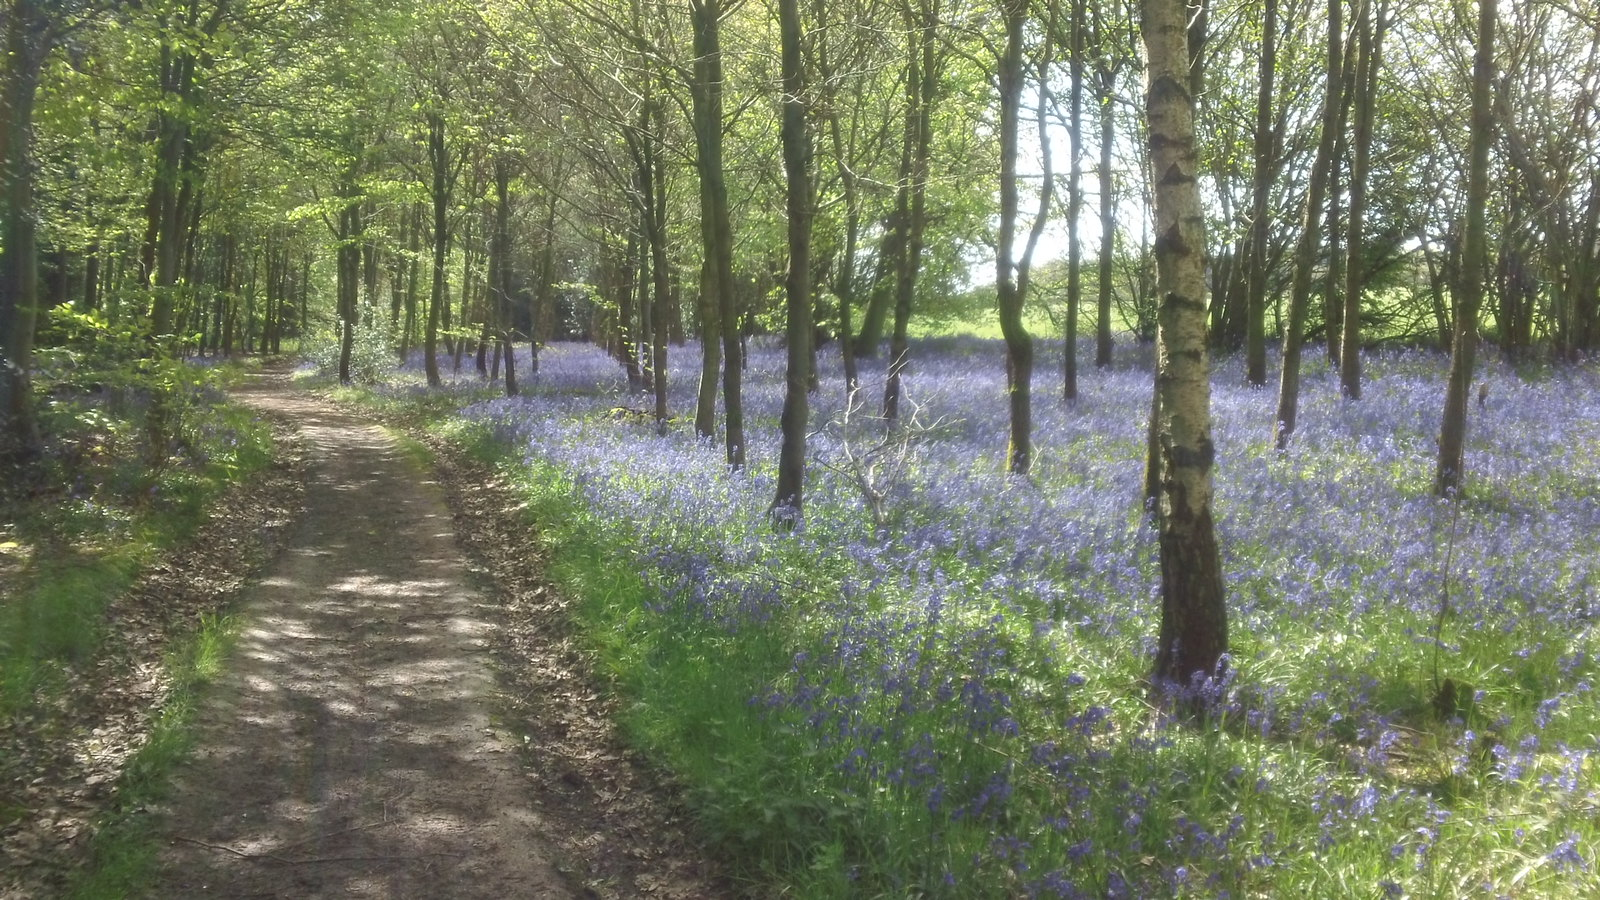 Bluebell woods still thriving Heading west to point 2 and a common, and more woods etc.